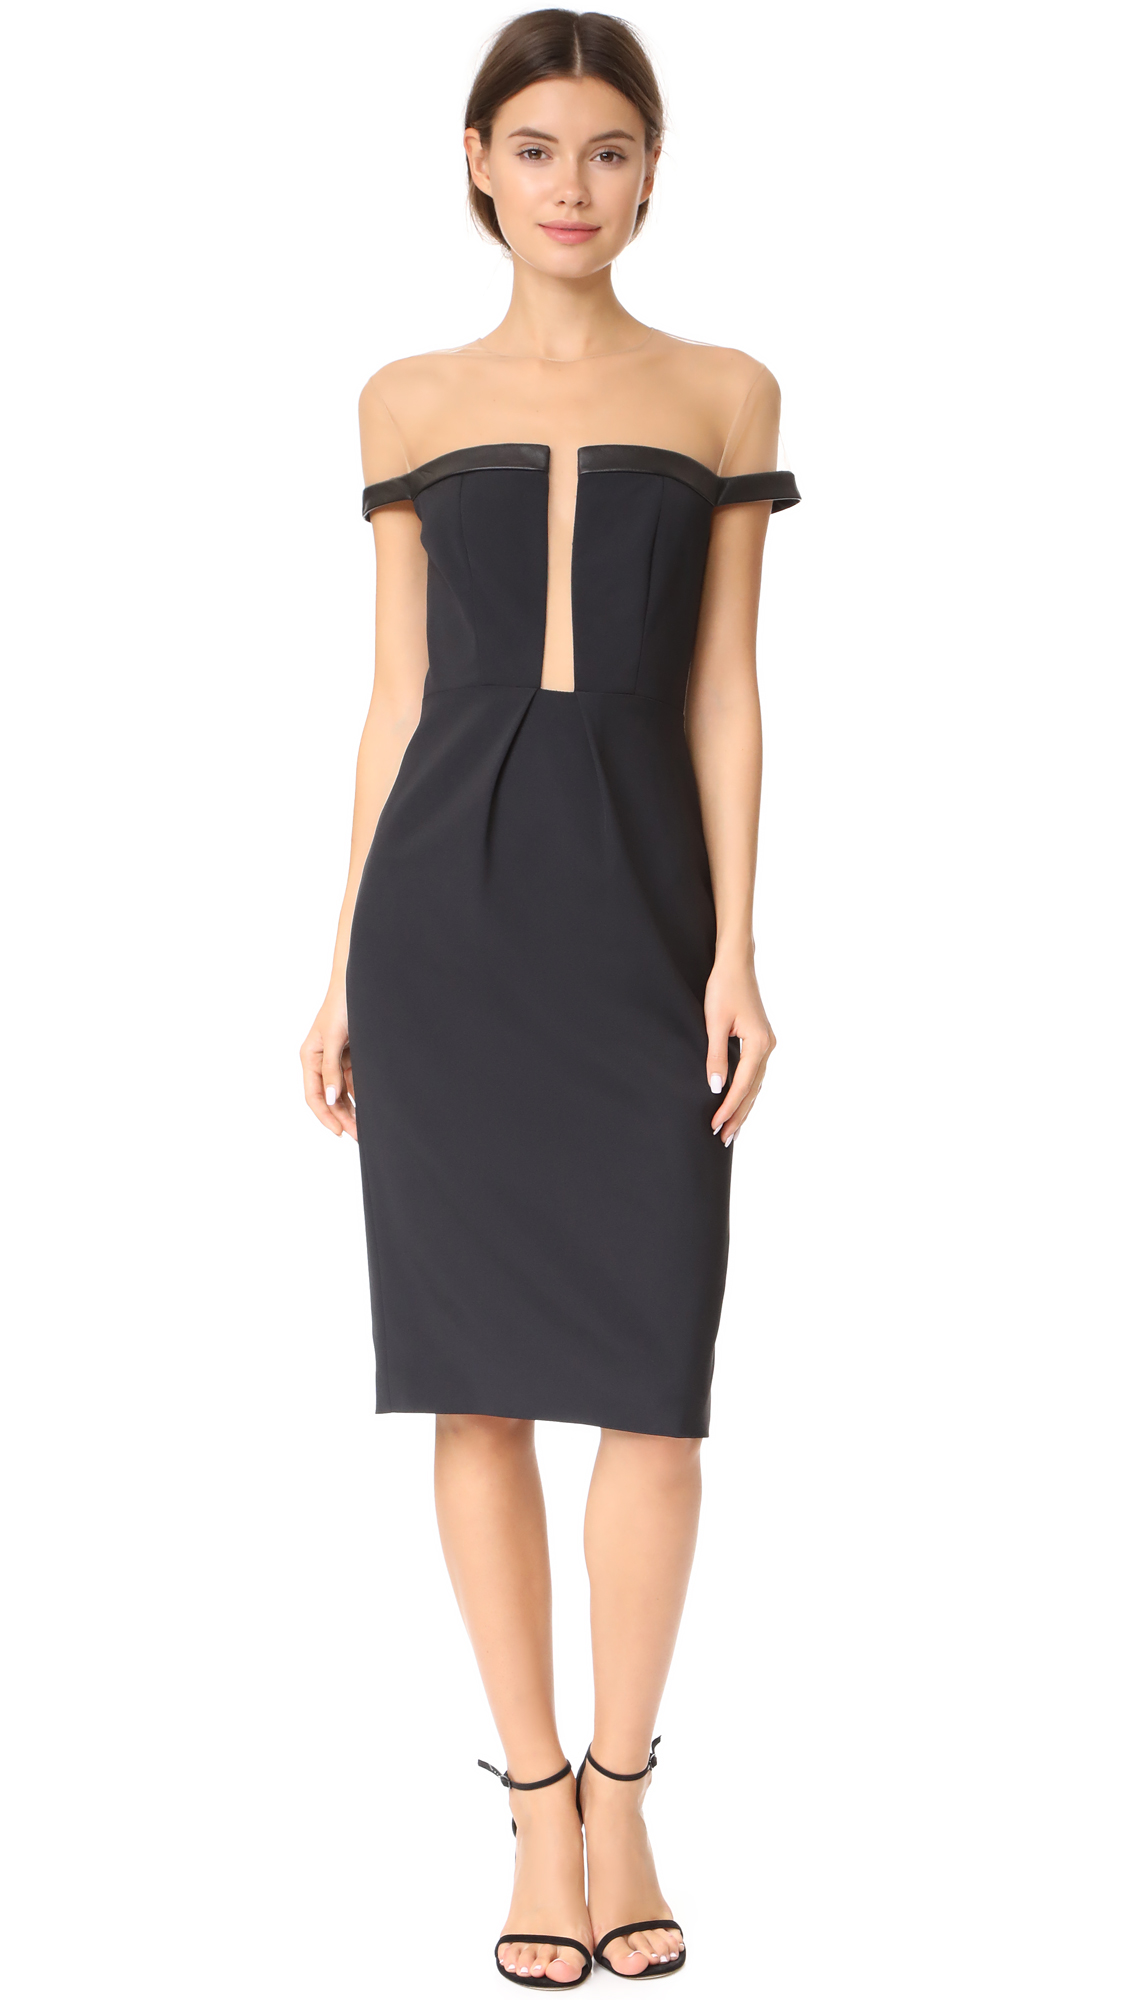 Julianna Bass Charlotte Dress - Black